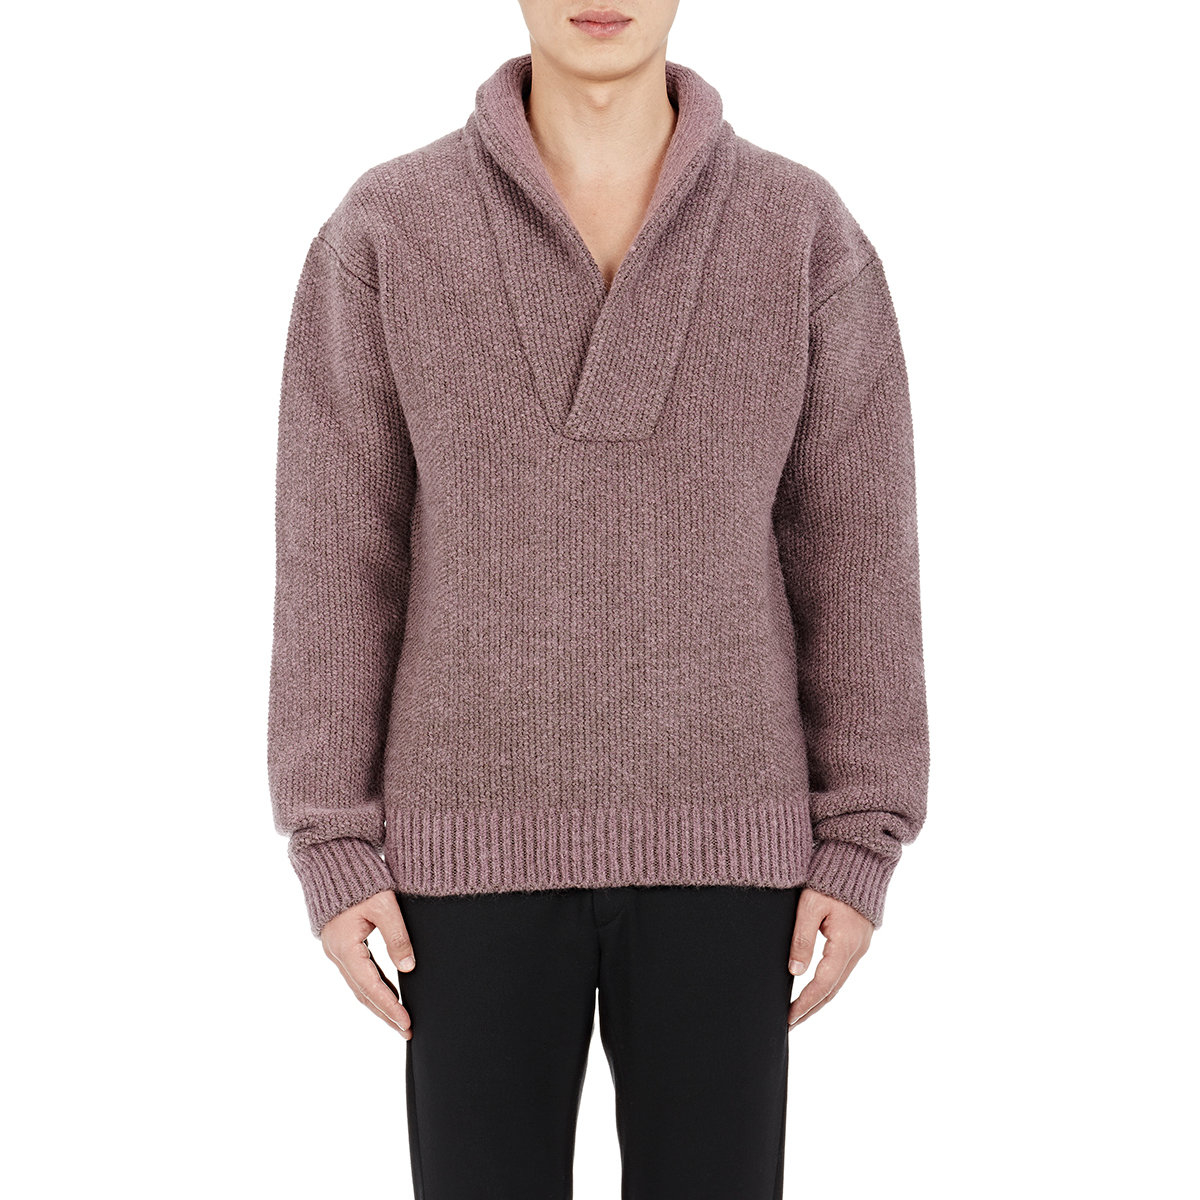 haider ackermann men 39 s shawl collar sweater in pink for. Black Bedroom Furniture Sets. Home Design Ideas